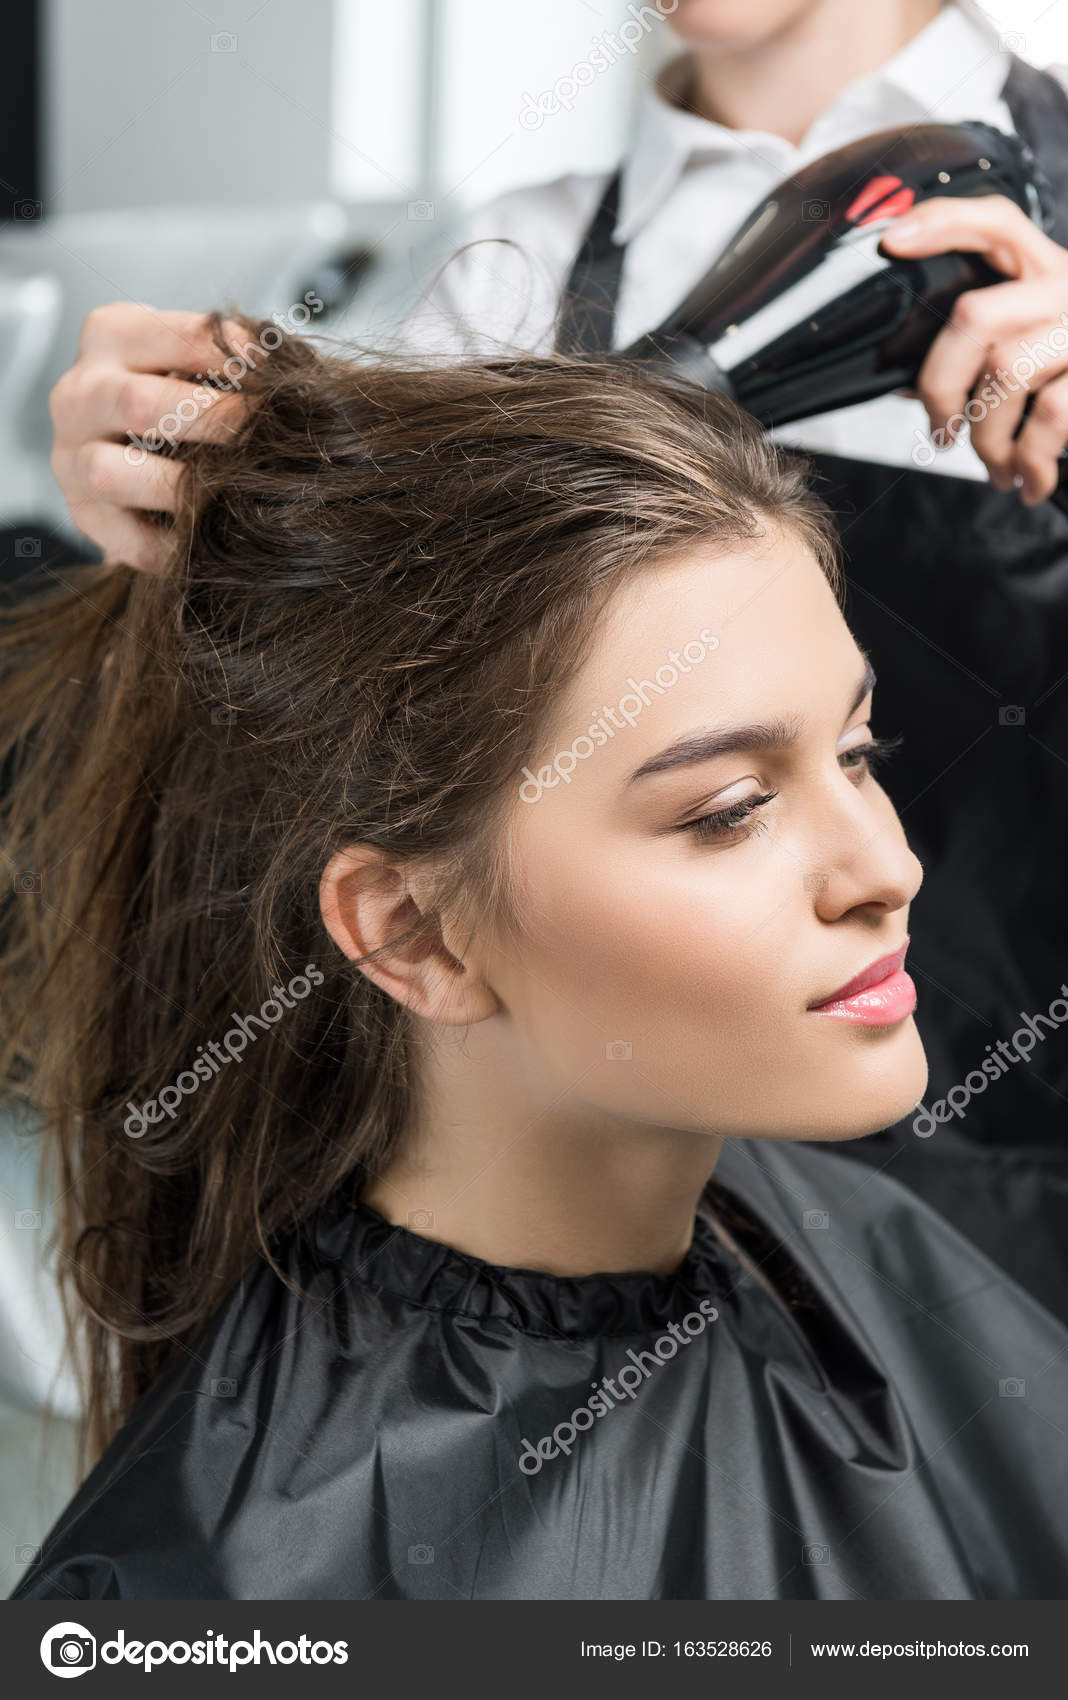 Hairdresser Drying Hair Of Woman Stock Photo Dimabaranow 163528626